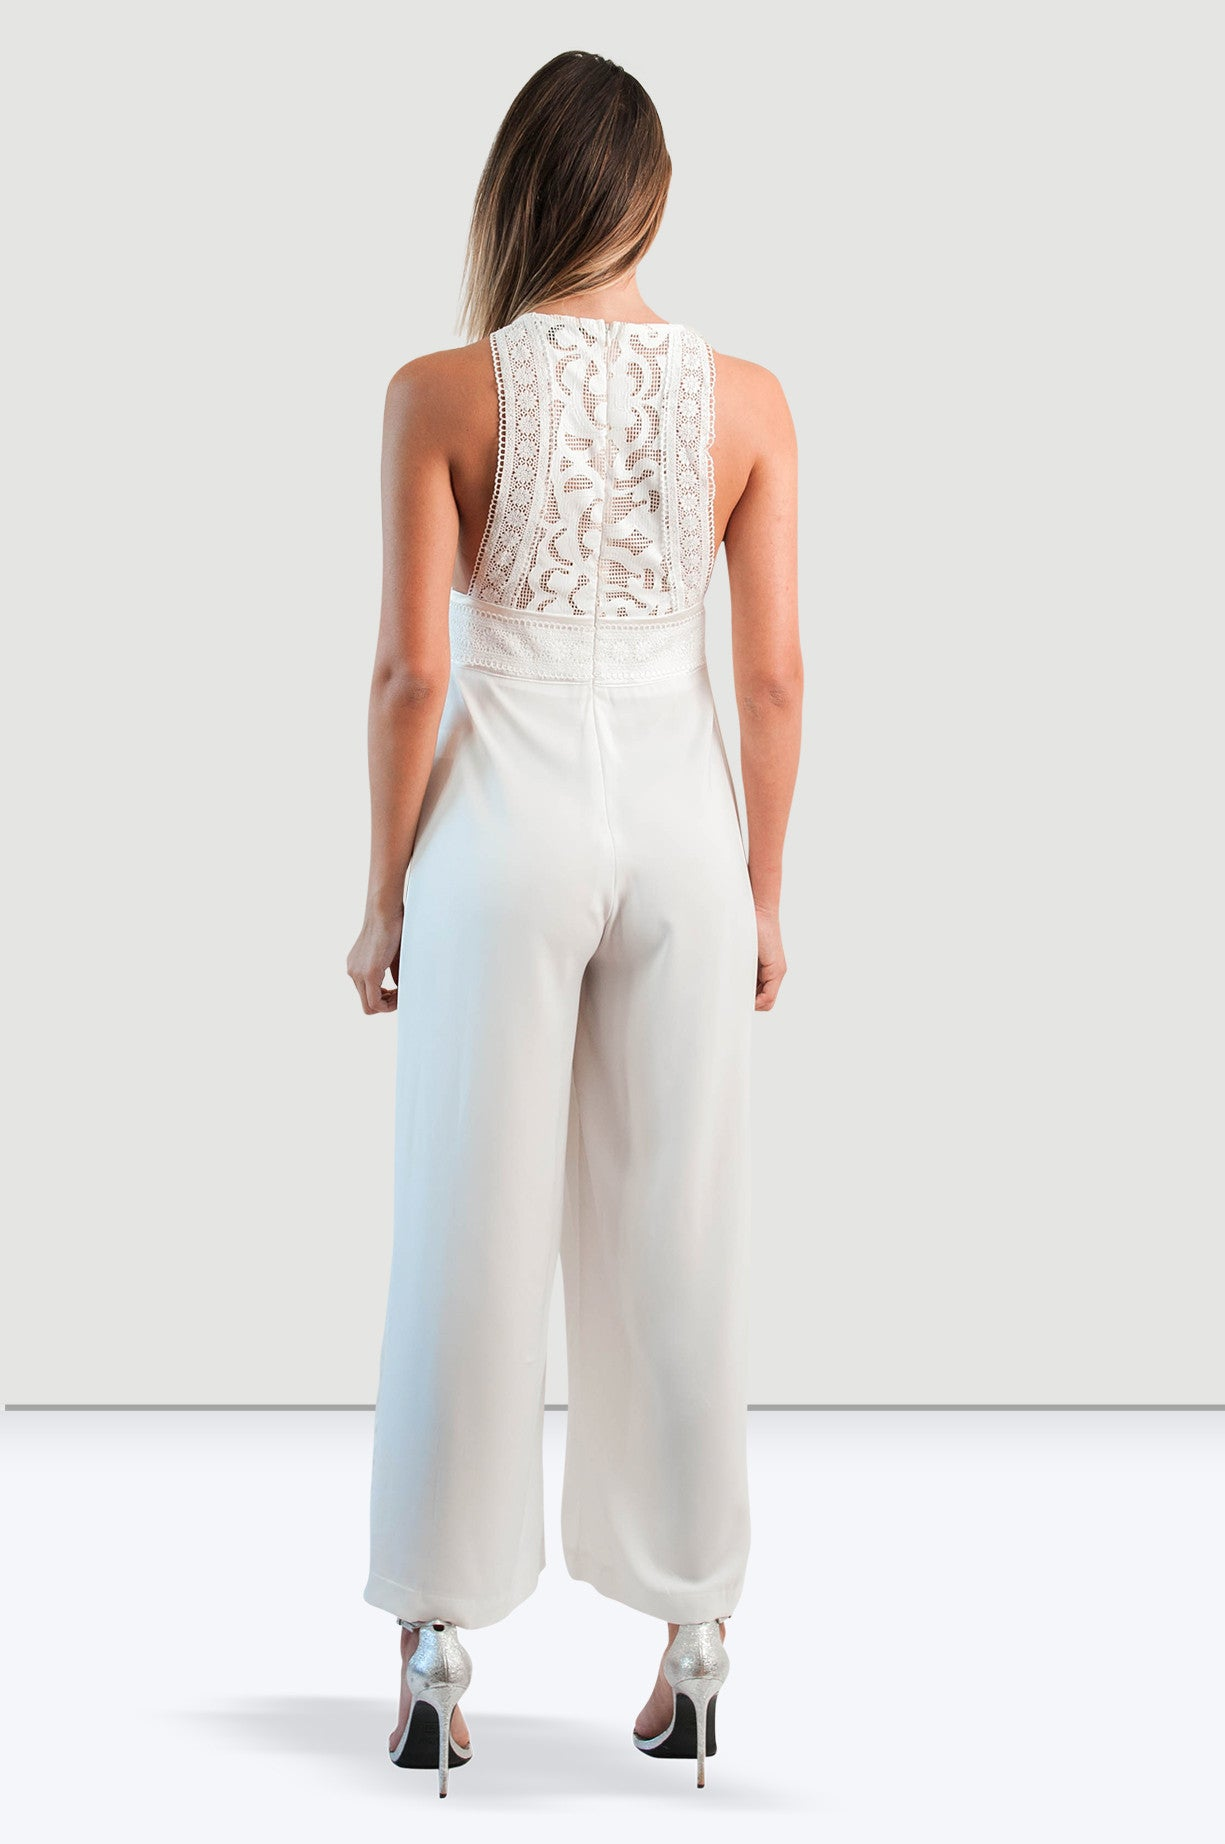 White Leave Jump Suit - Jade and Camil